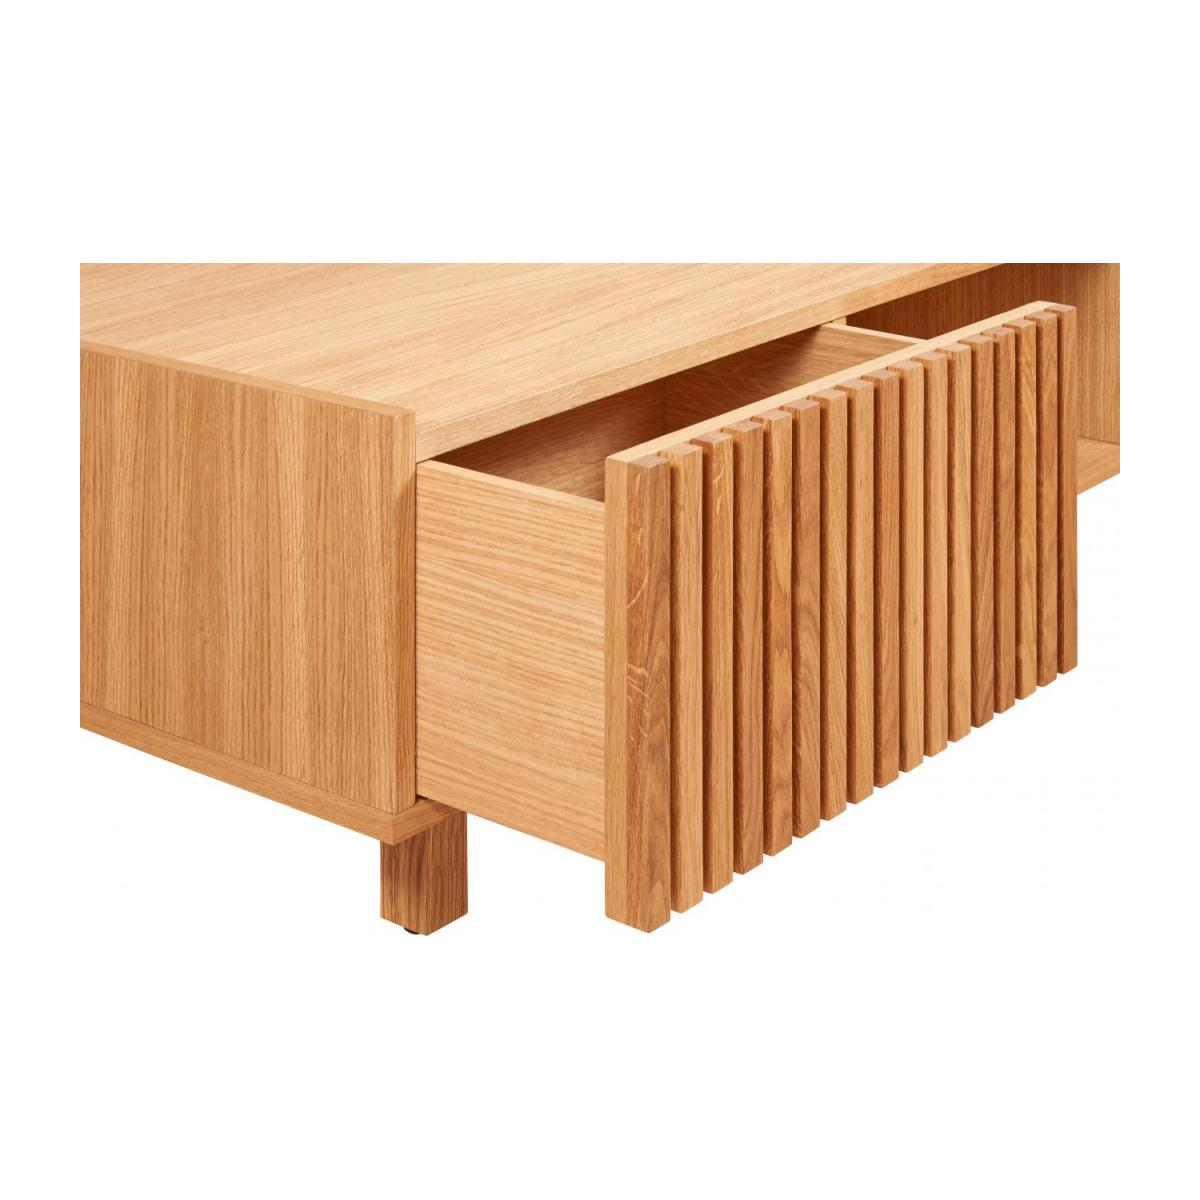 Oak low table n°5